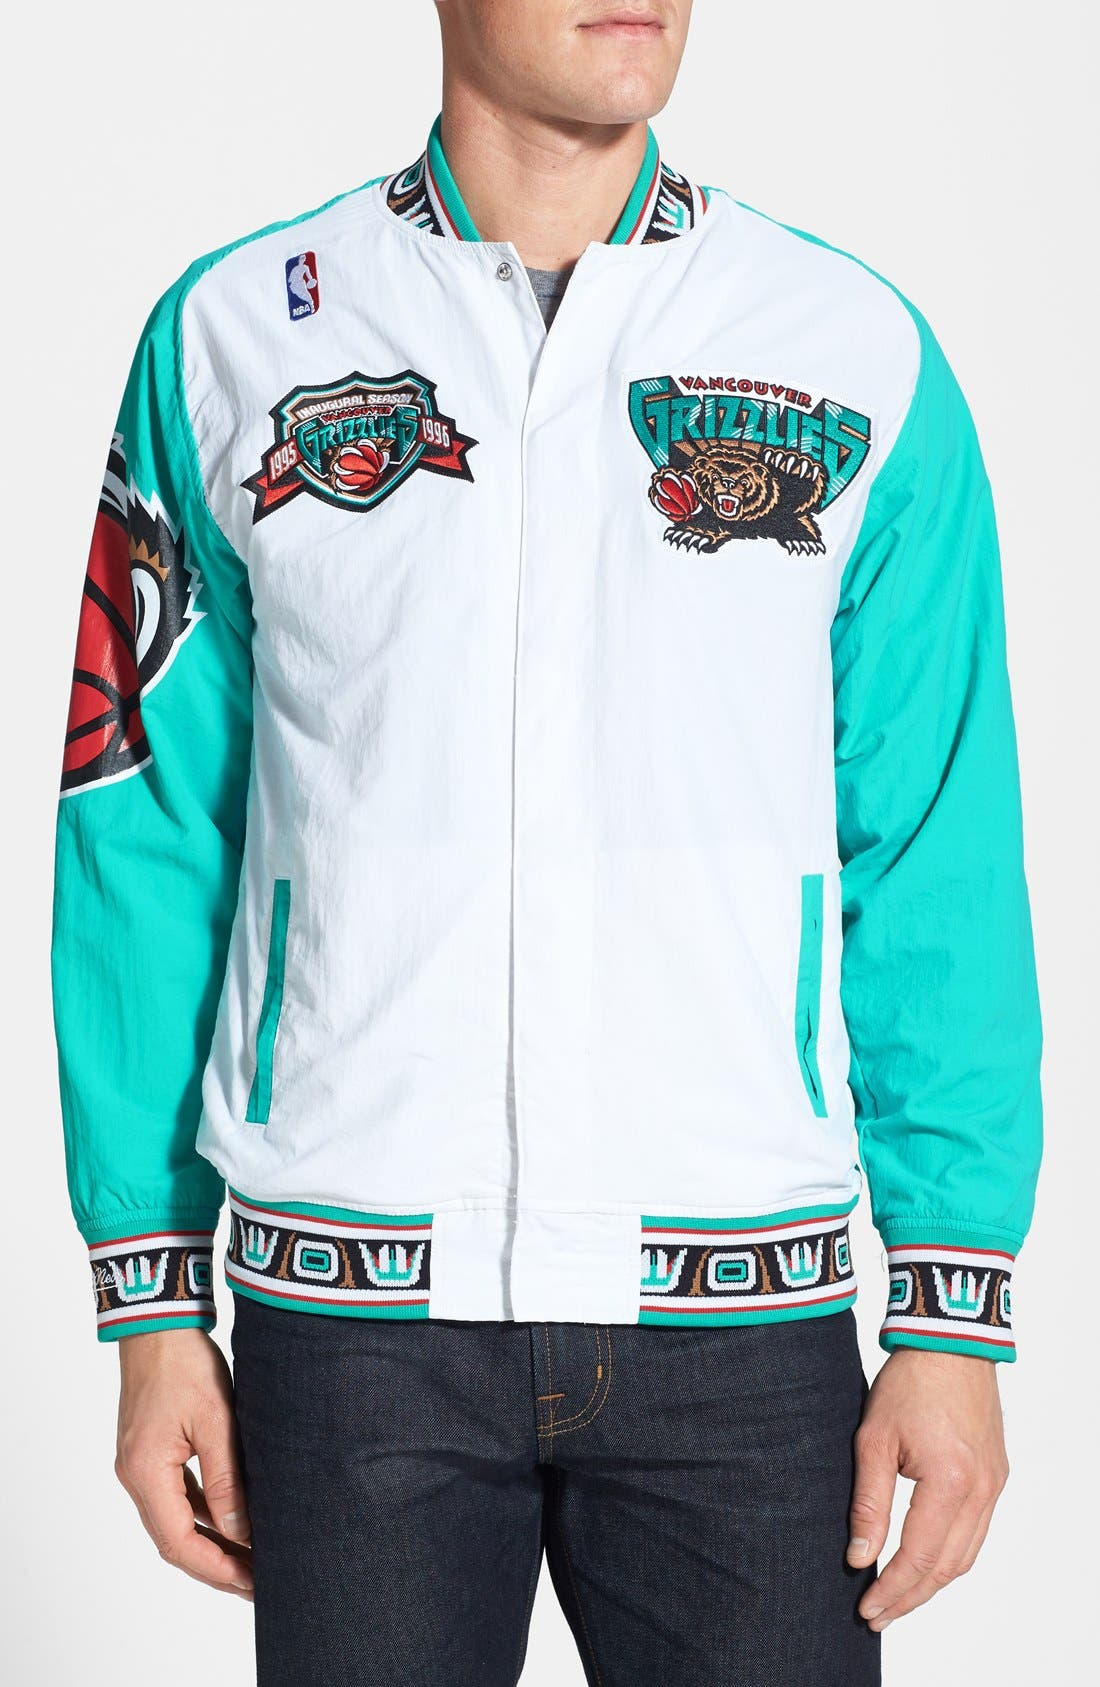 Main Image - Mitchell & Ness 'Vancouver Grizzlies' Tailored Fit Warm-Up Jacket